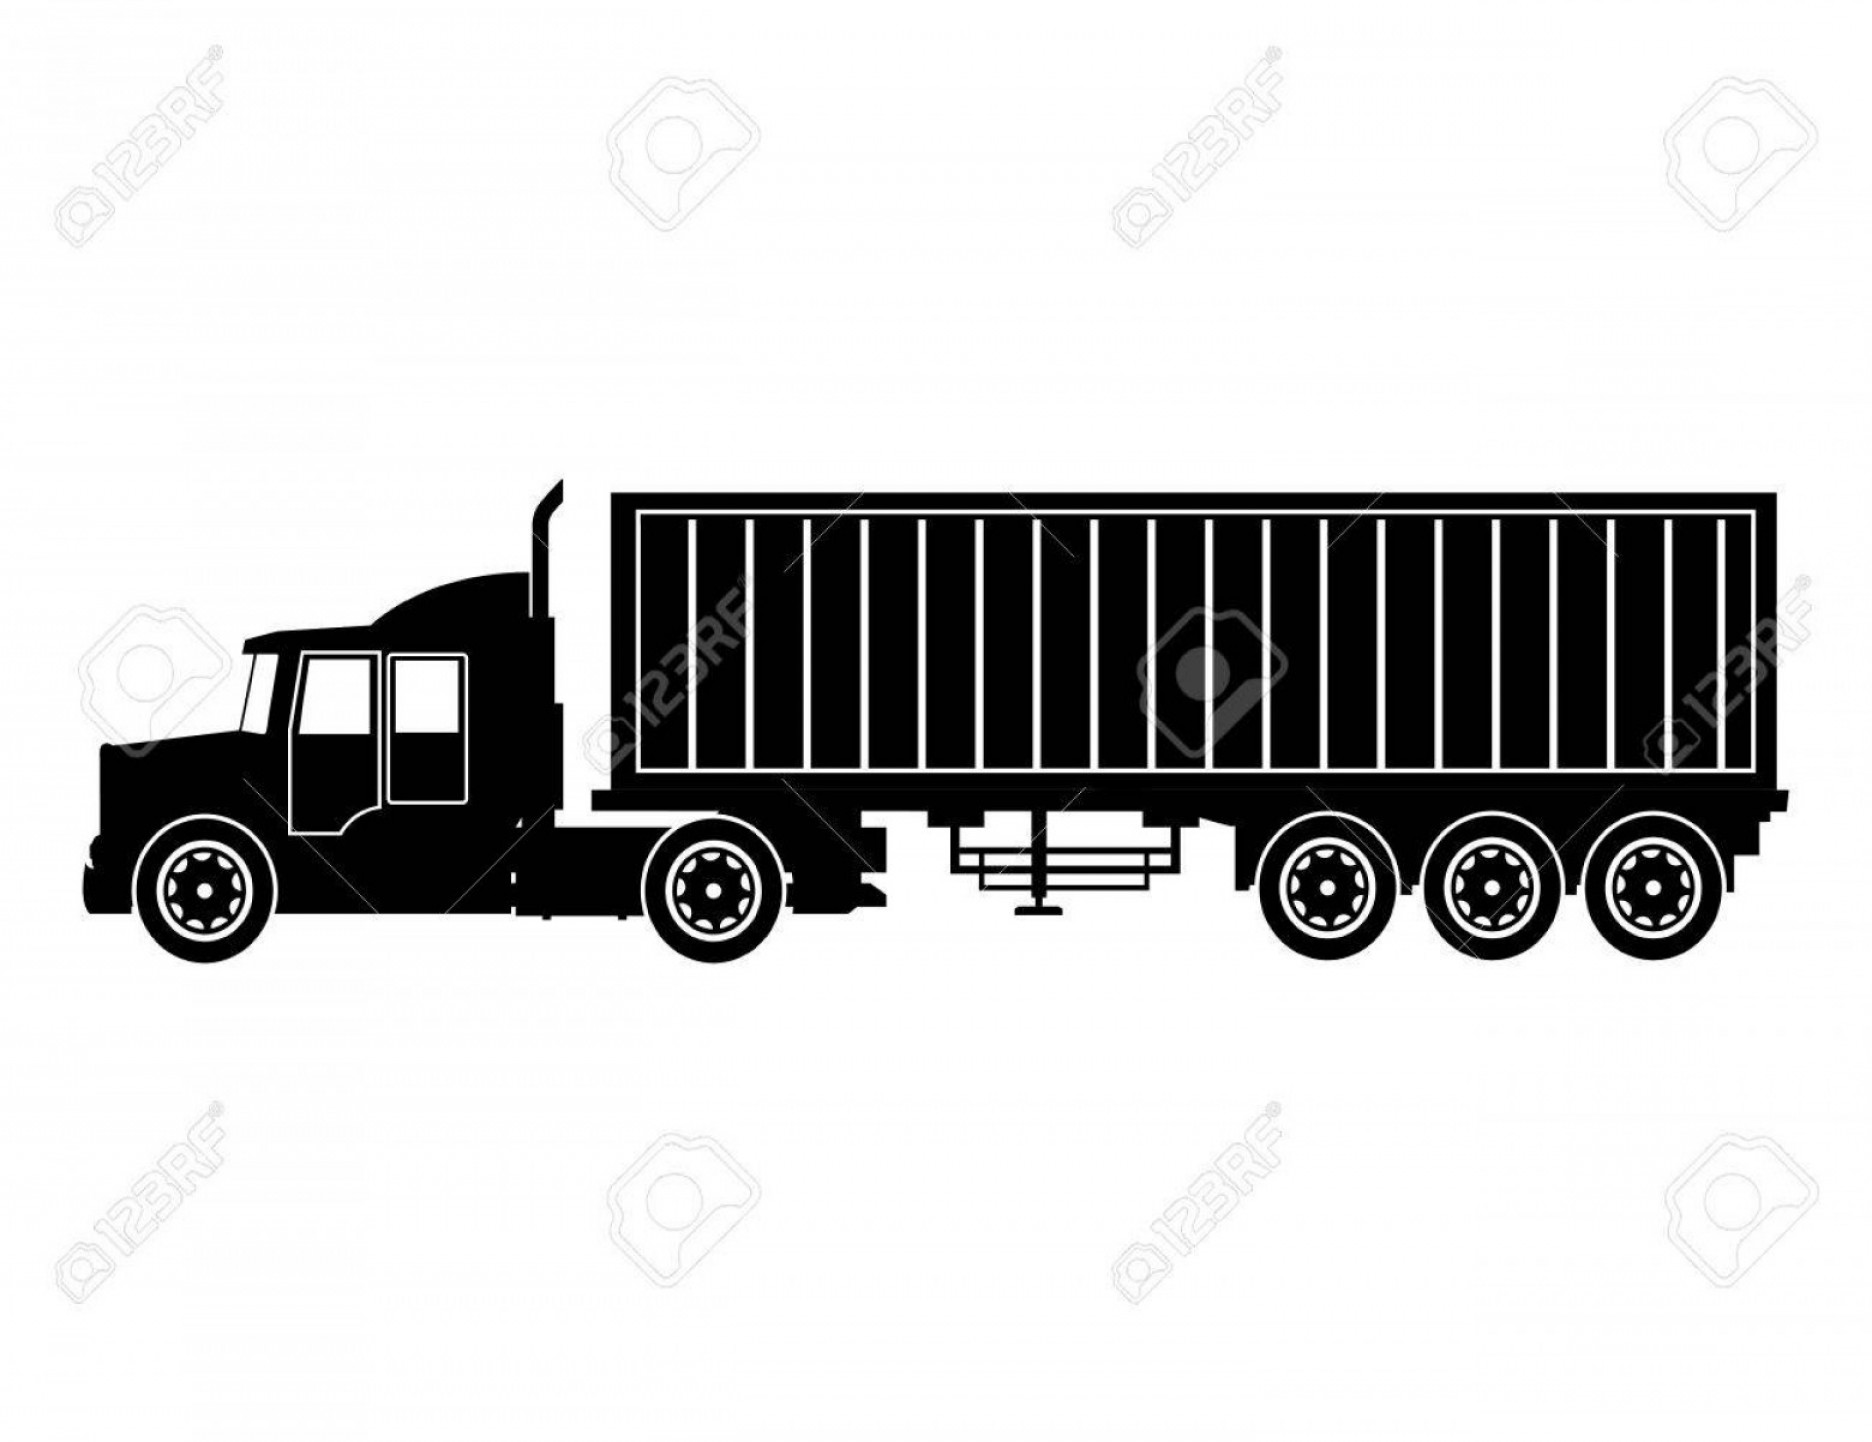 Vector Truck And Trailer Hauling: Photostock Vector Silhouette Truck Trailer Container Delivery Transport Vector Illustration Eps